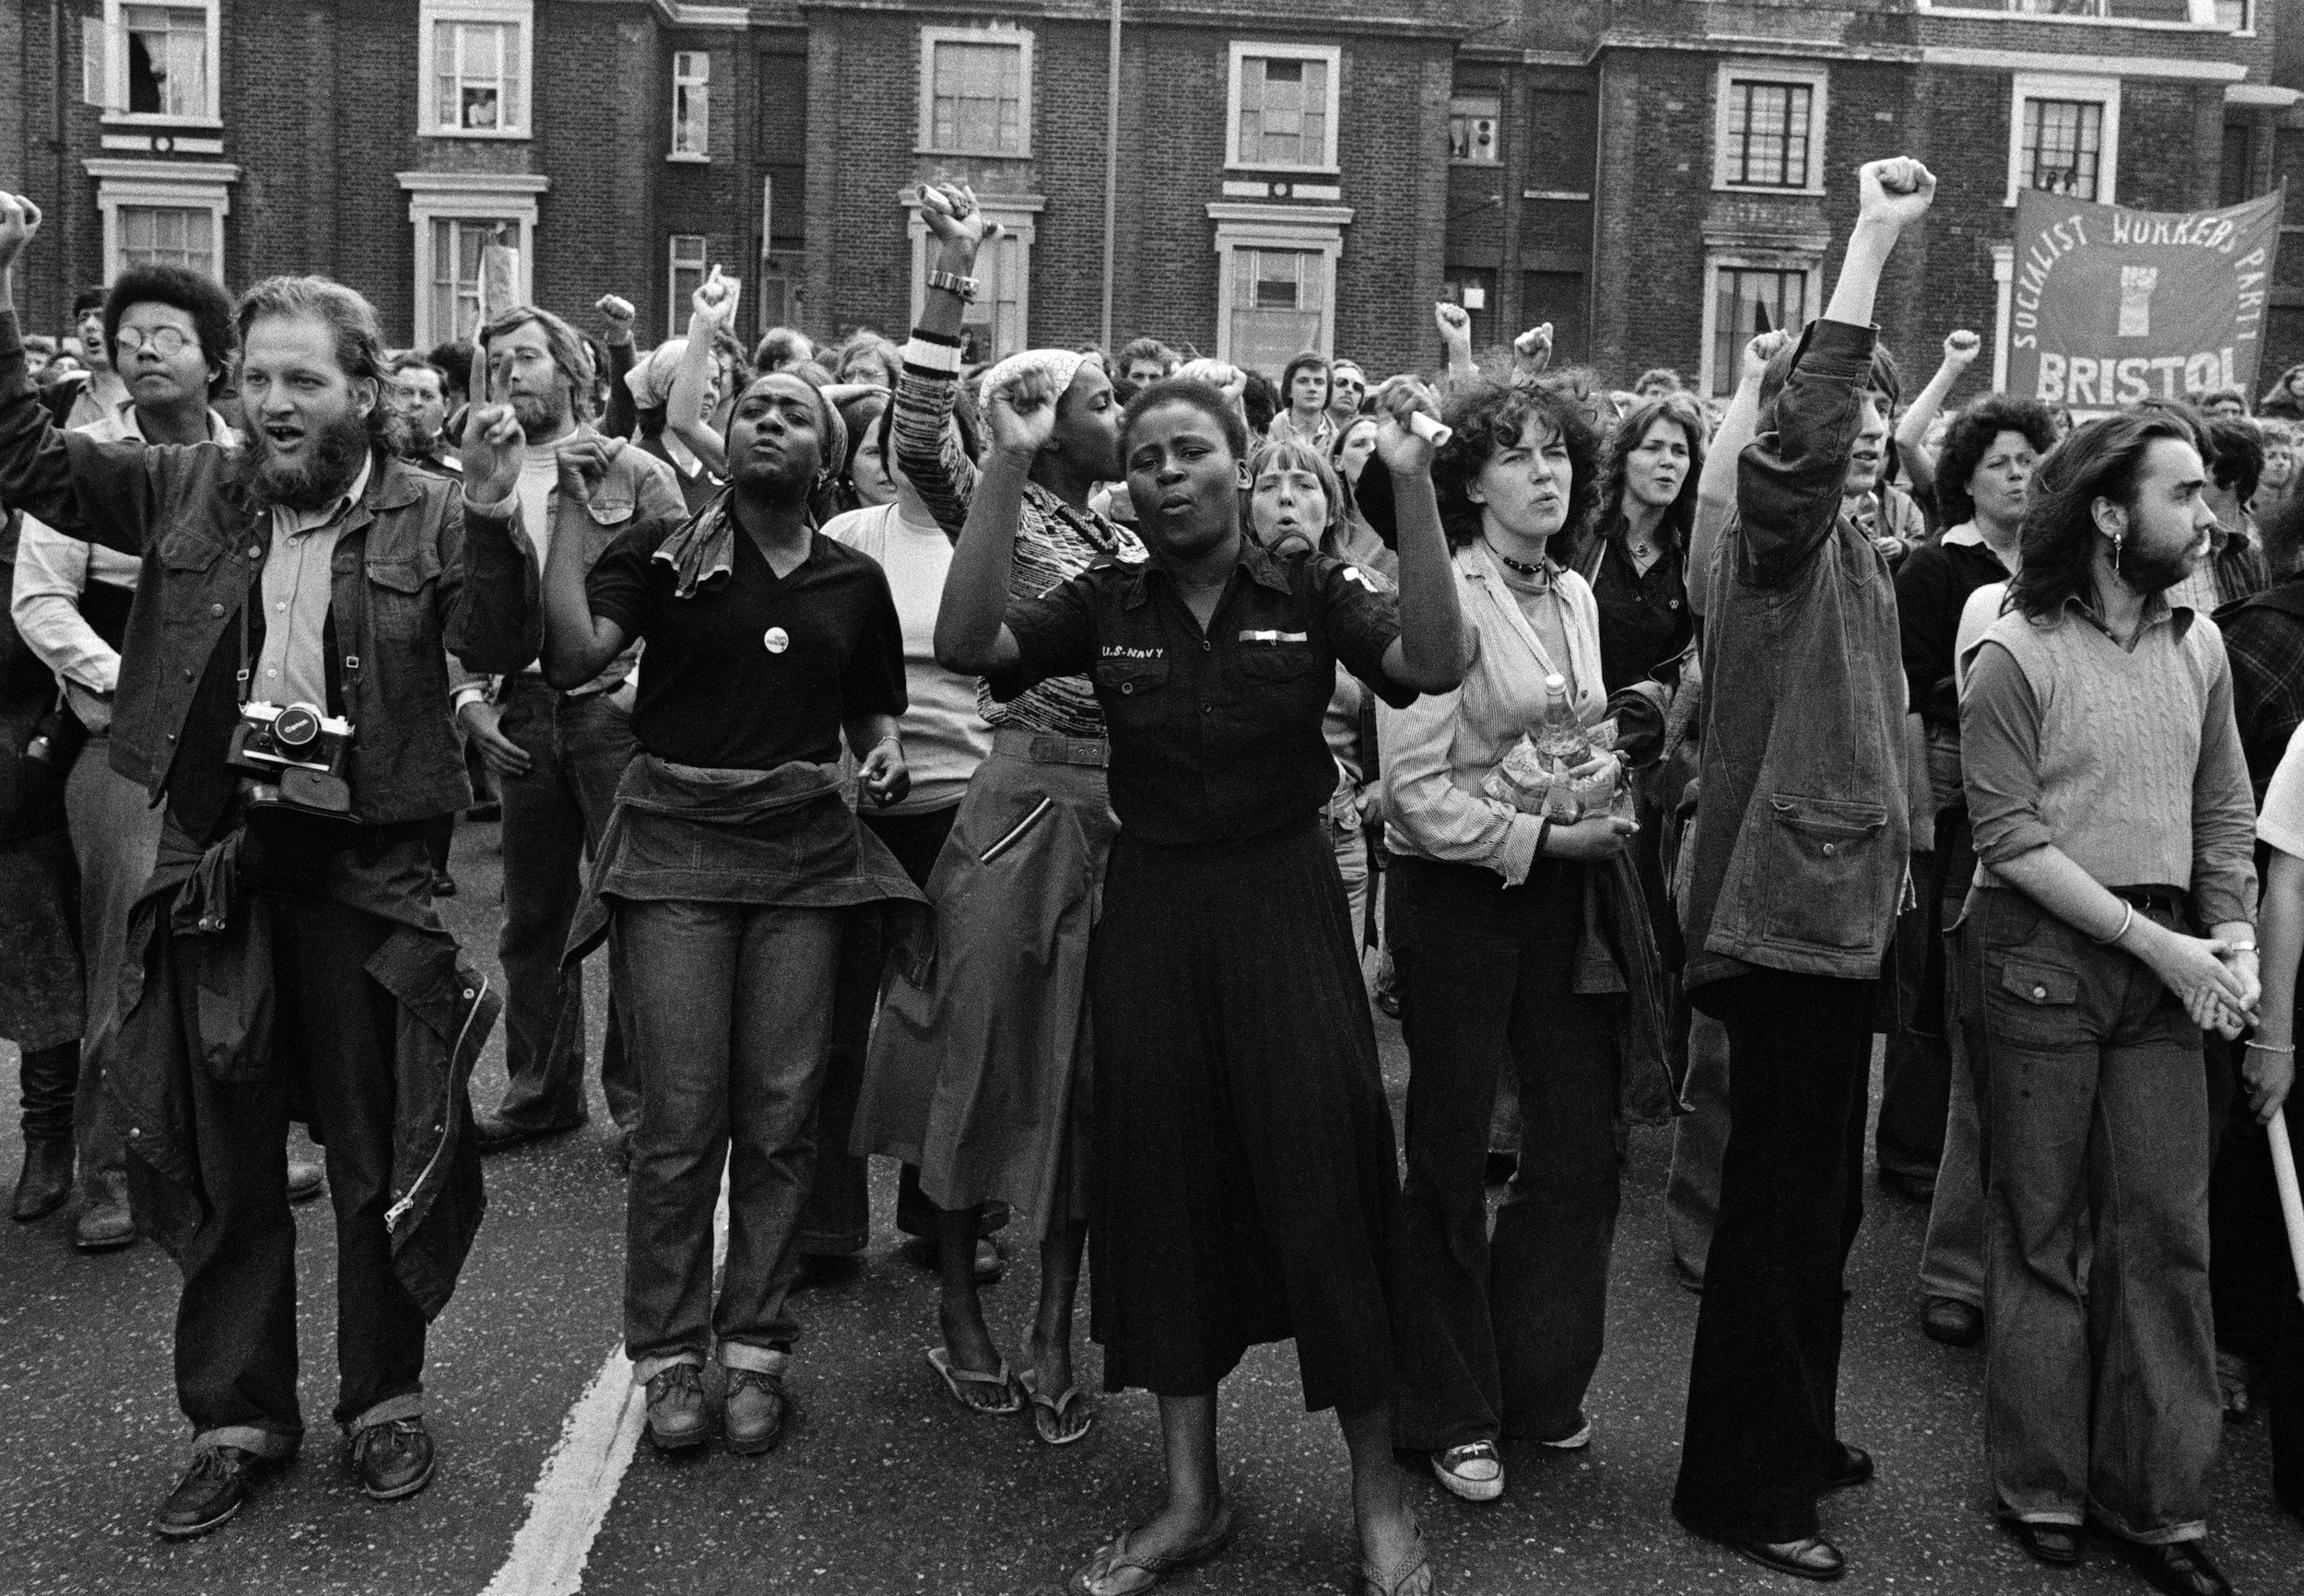 Demonstration against the fascist National Front, circa 1977 (all photos by Syd Shelton)